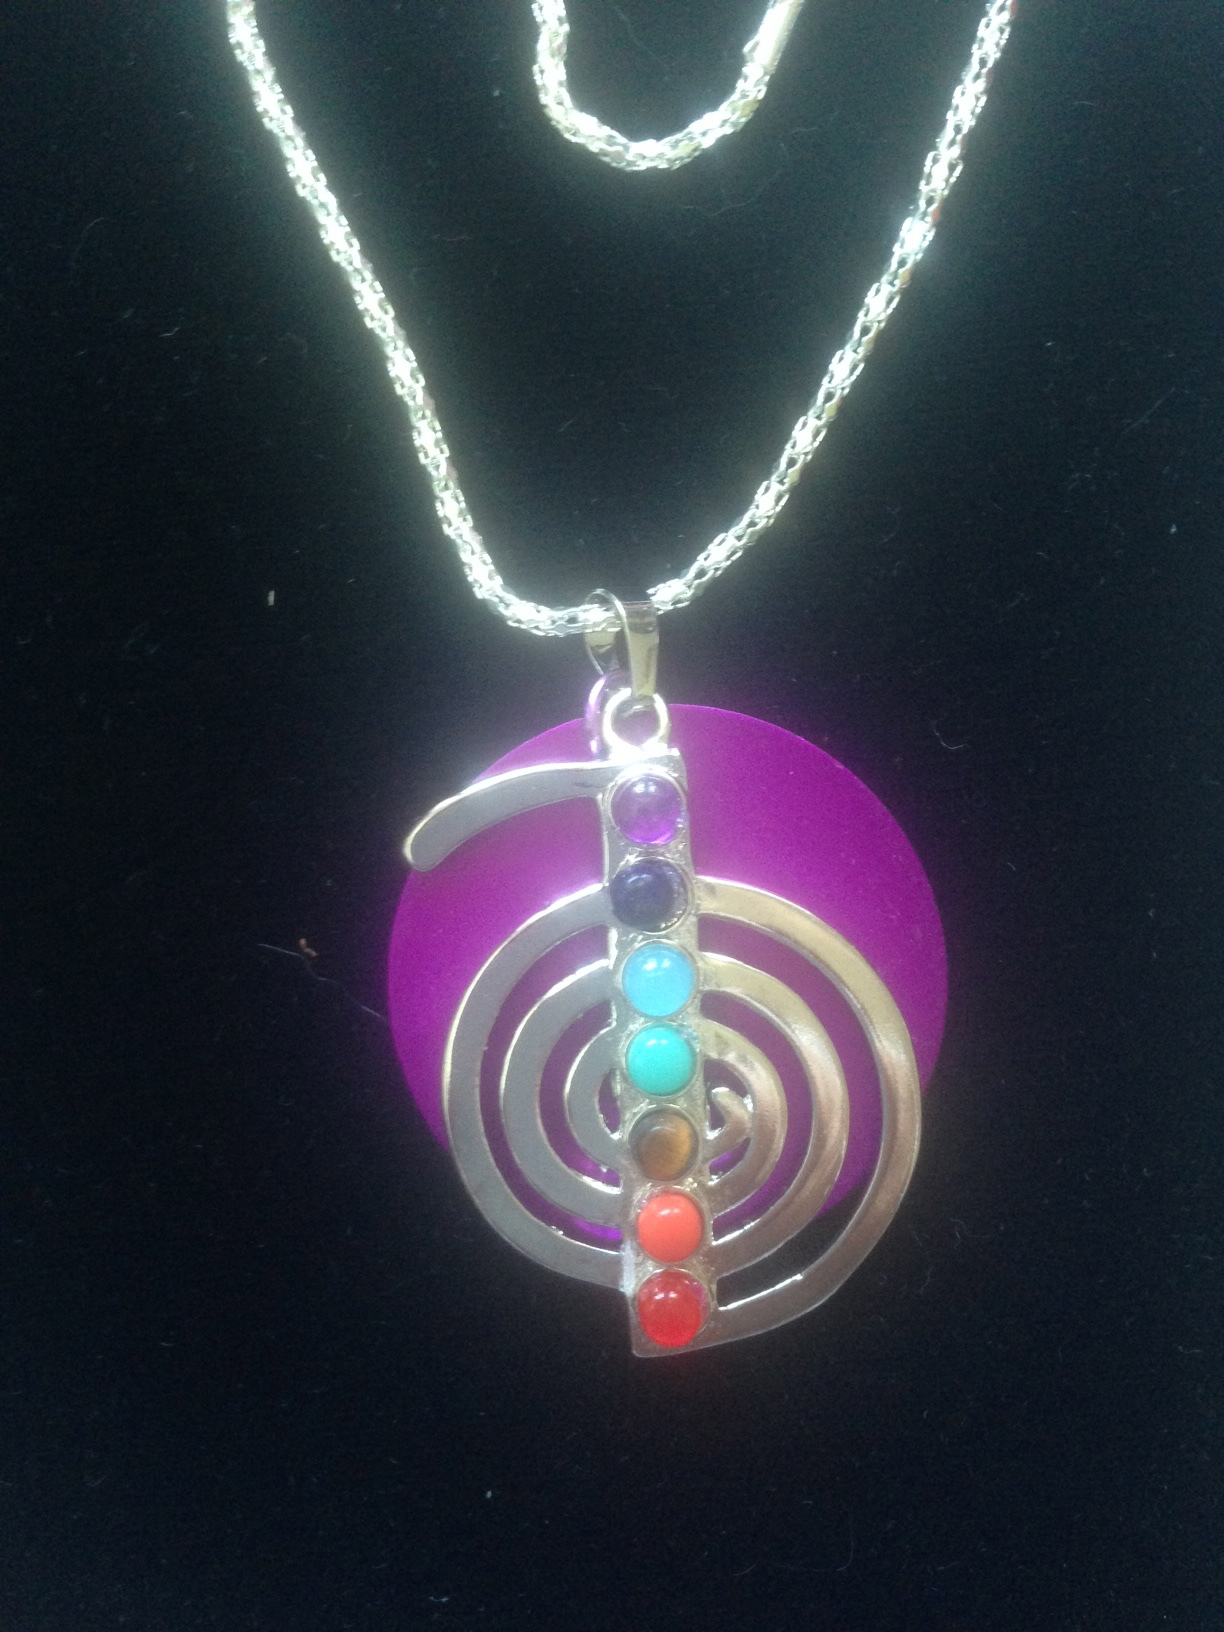 SALE: Reiki 7-Stone Healing Necklace & Disk